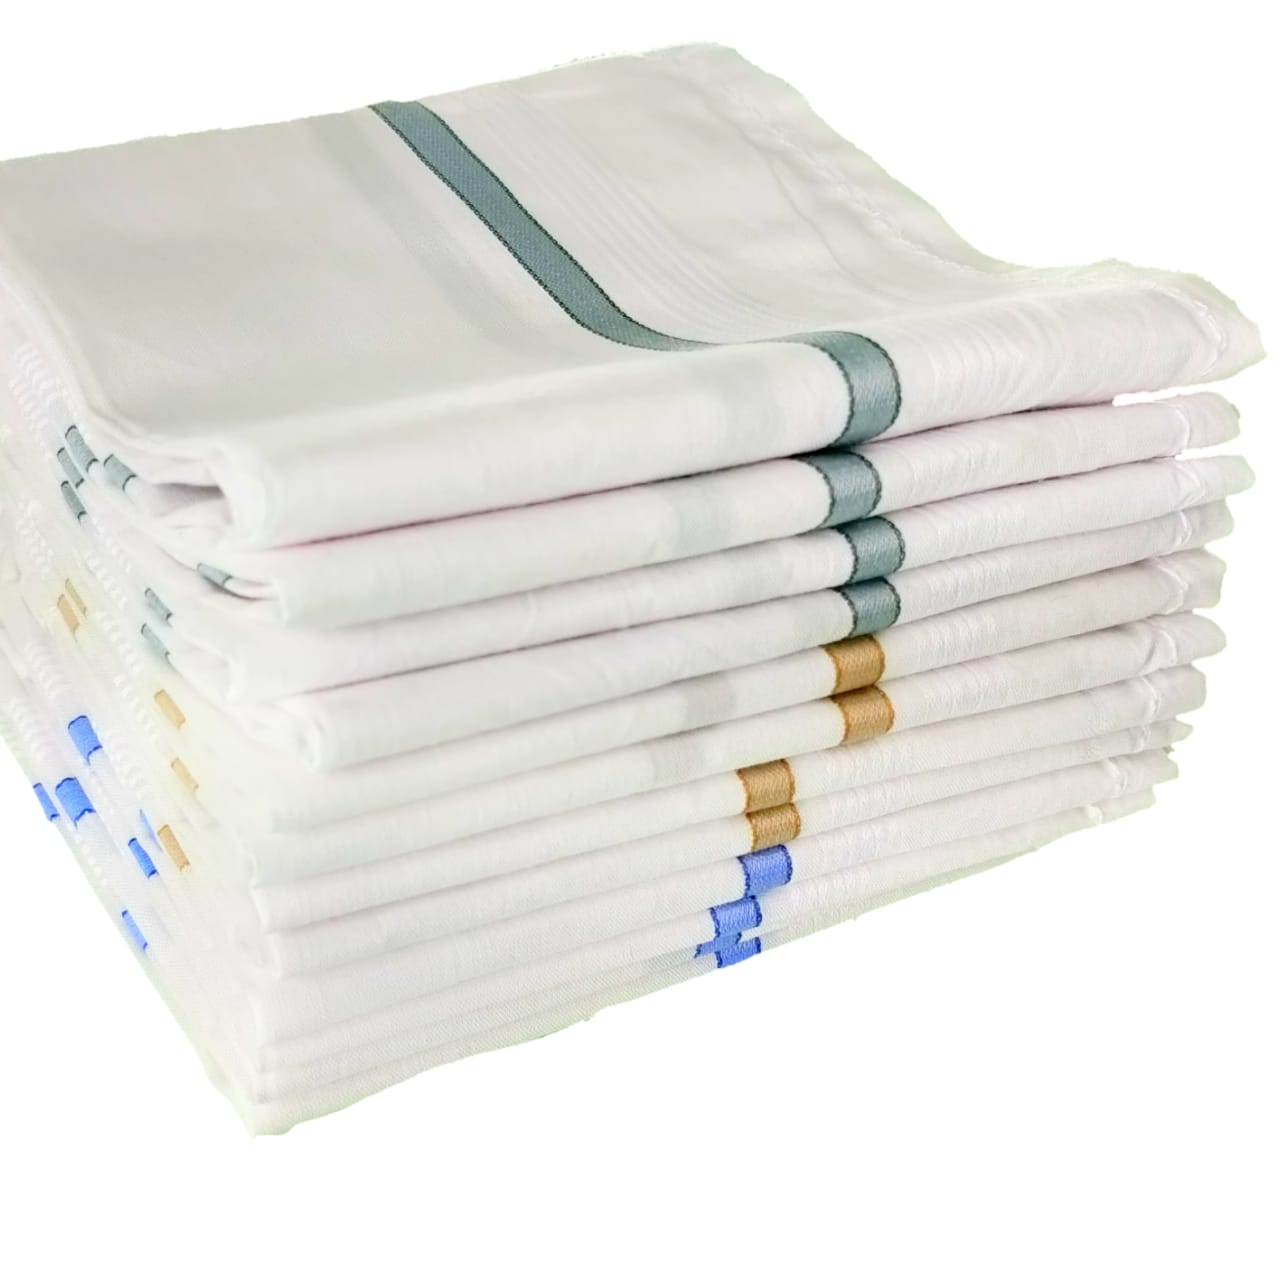 Mens White Cotton Handkerchiefs High Quality (Pack Of 12)